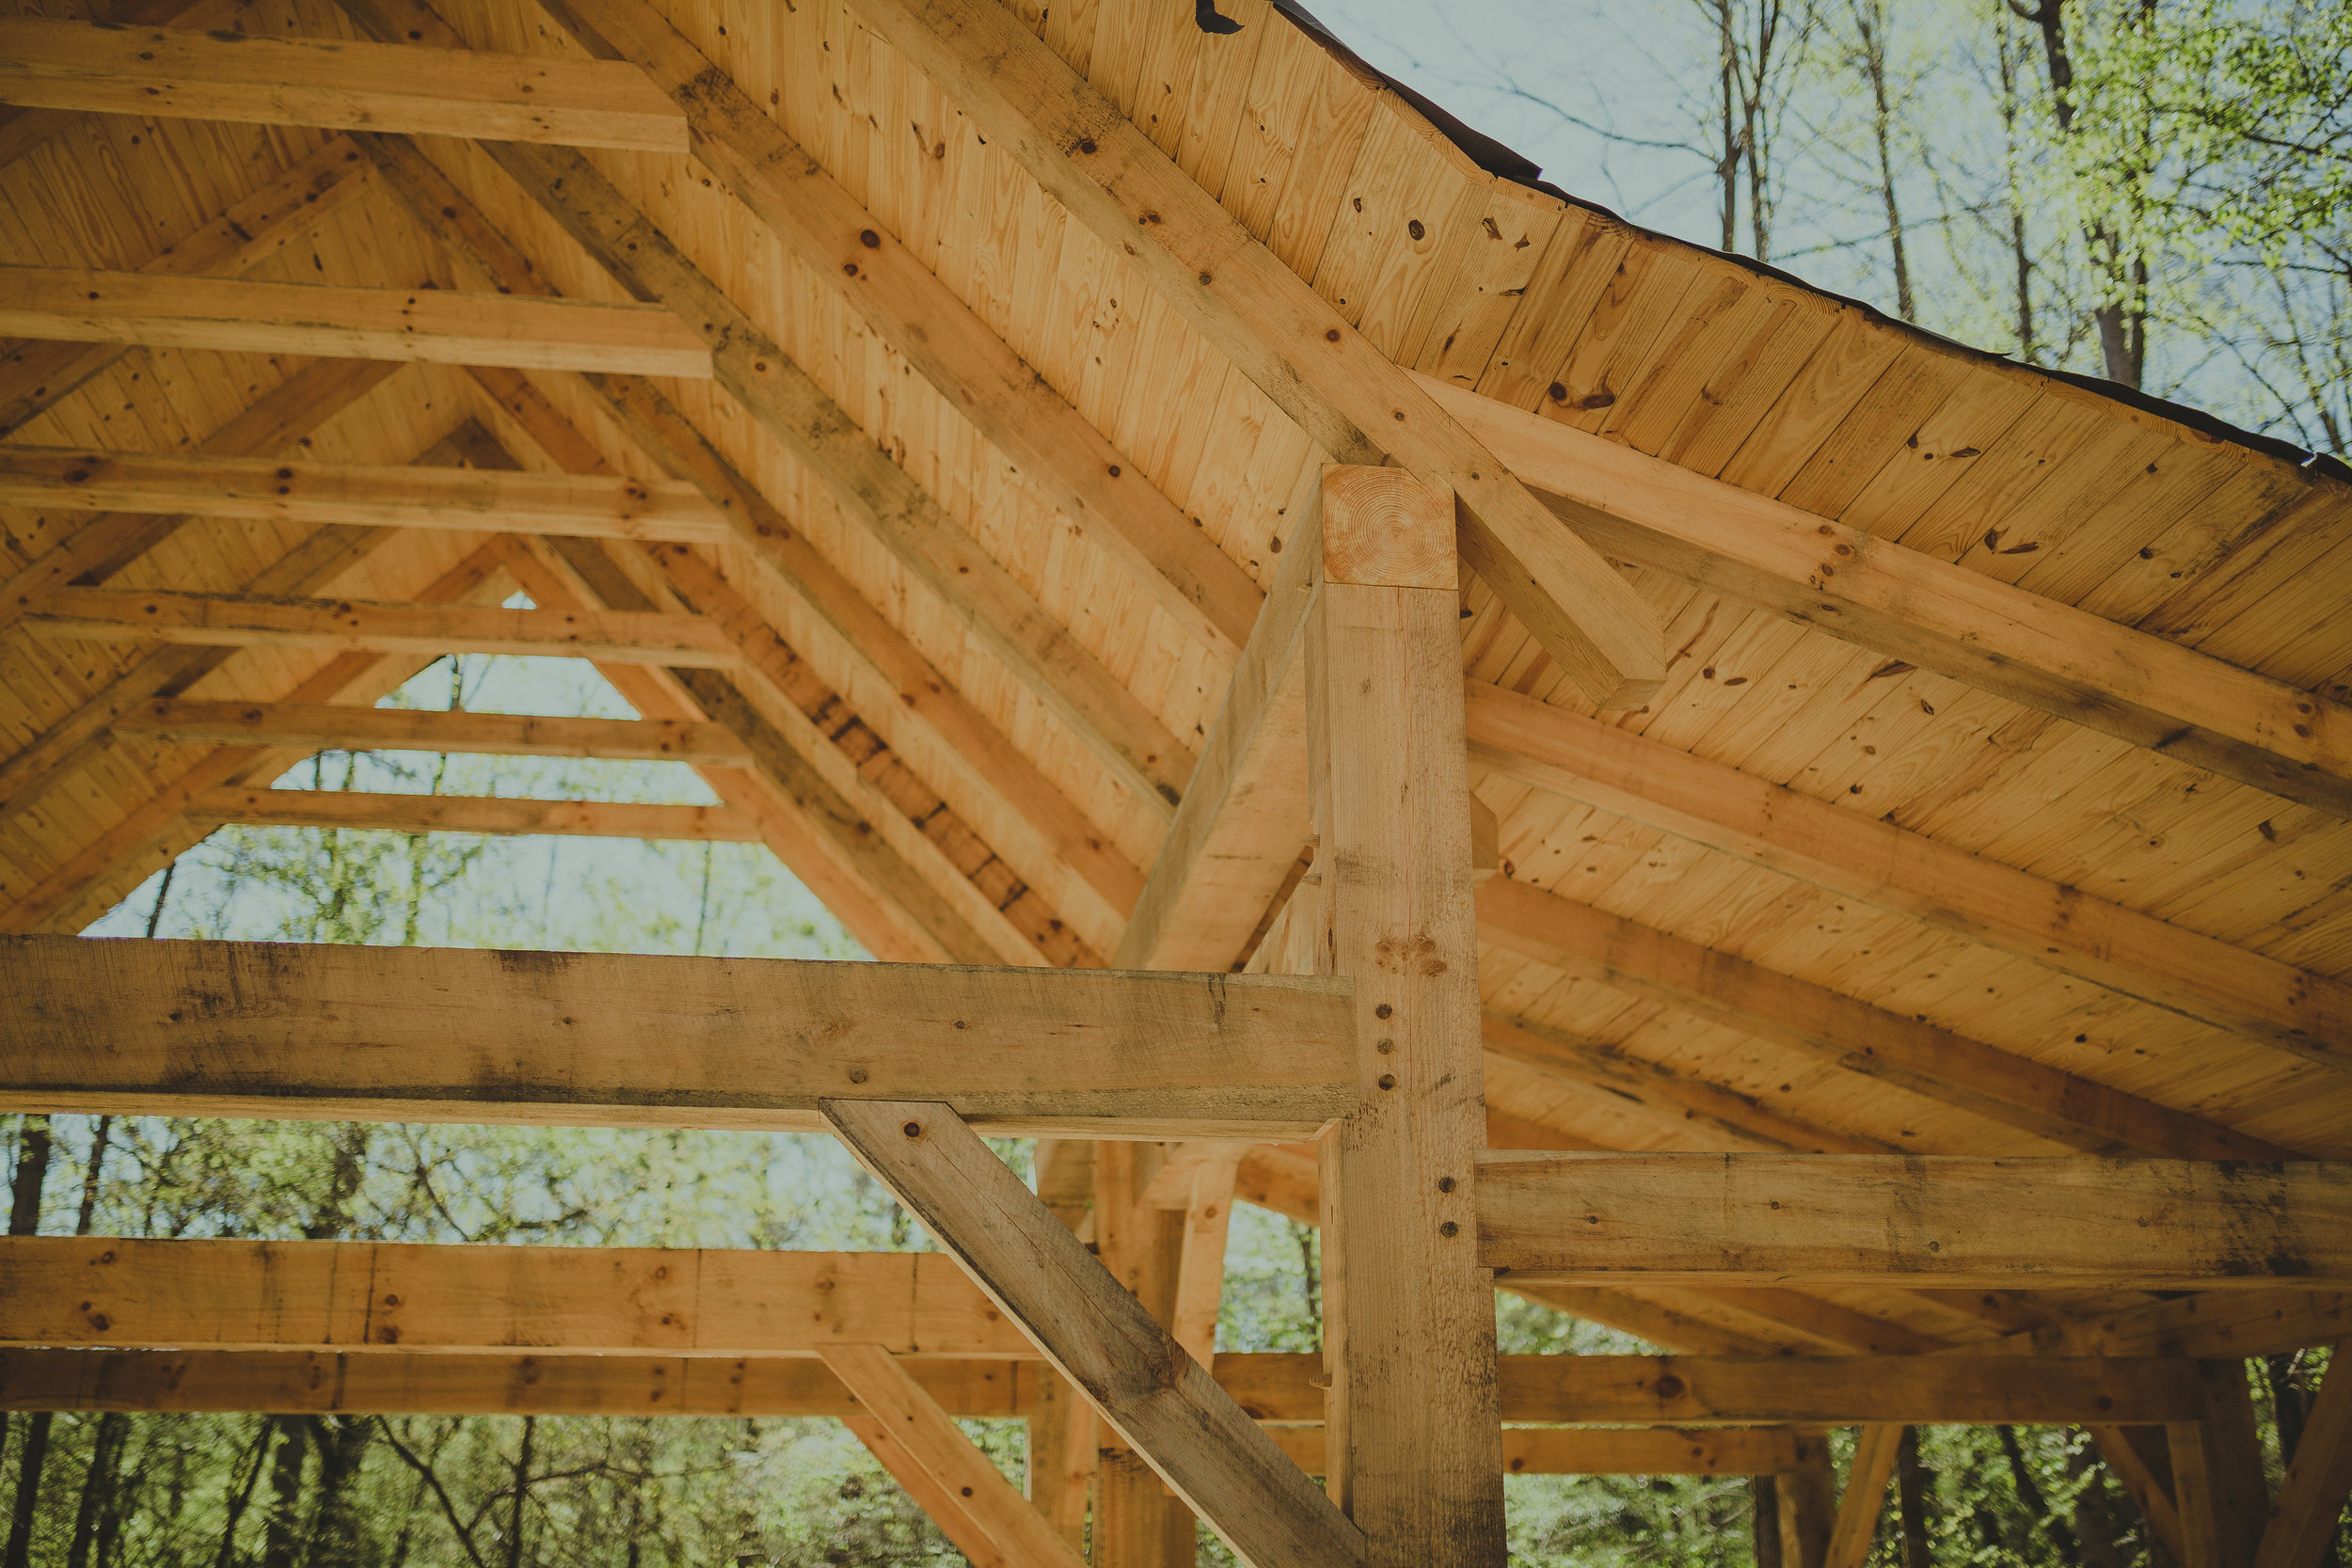 hand crafted workshop outbuilding timber frame eastern white pine athens georgia